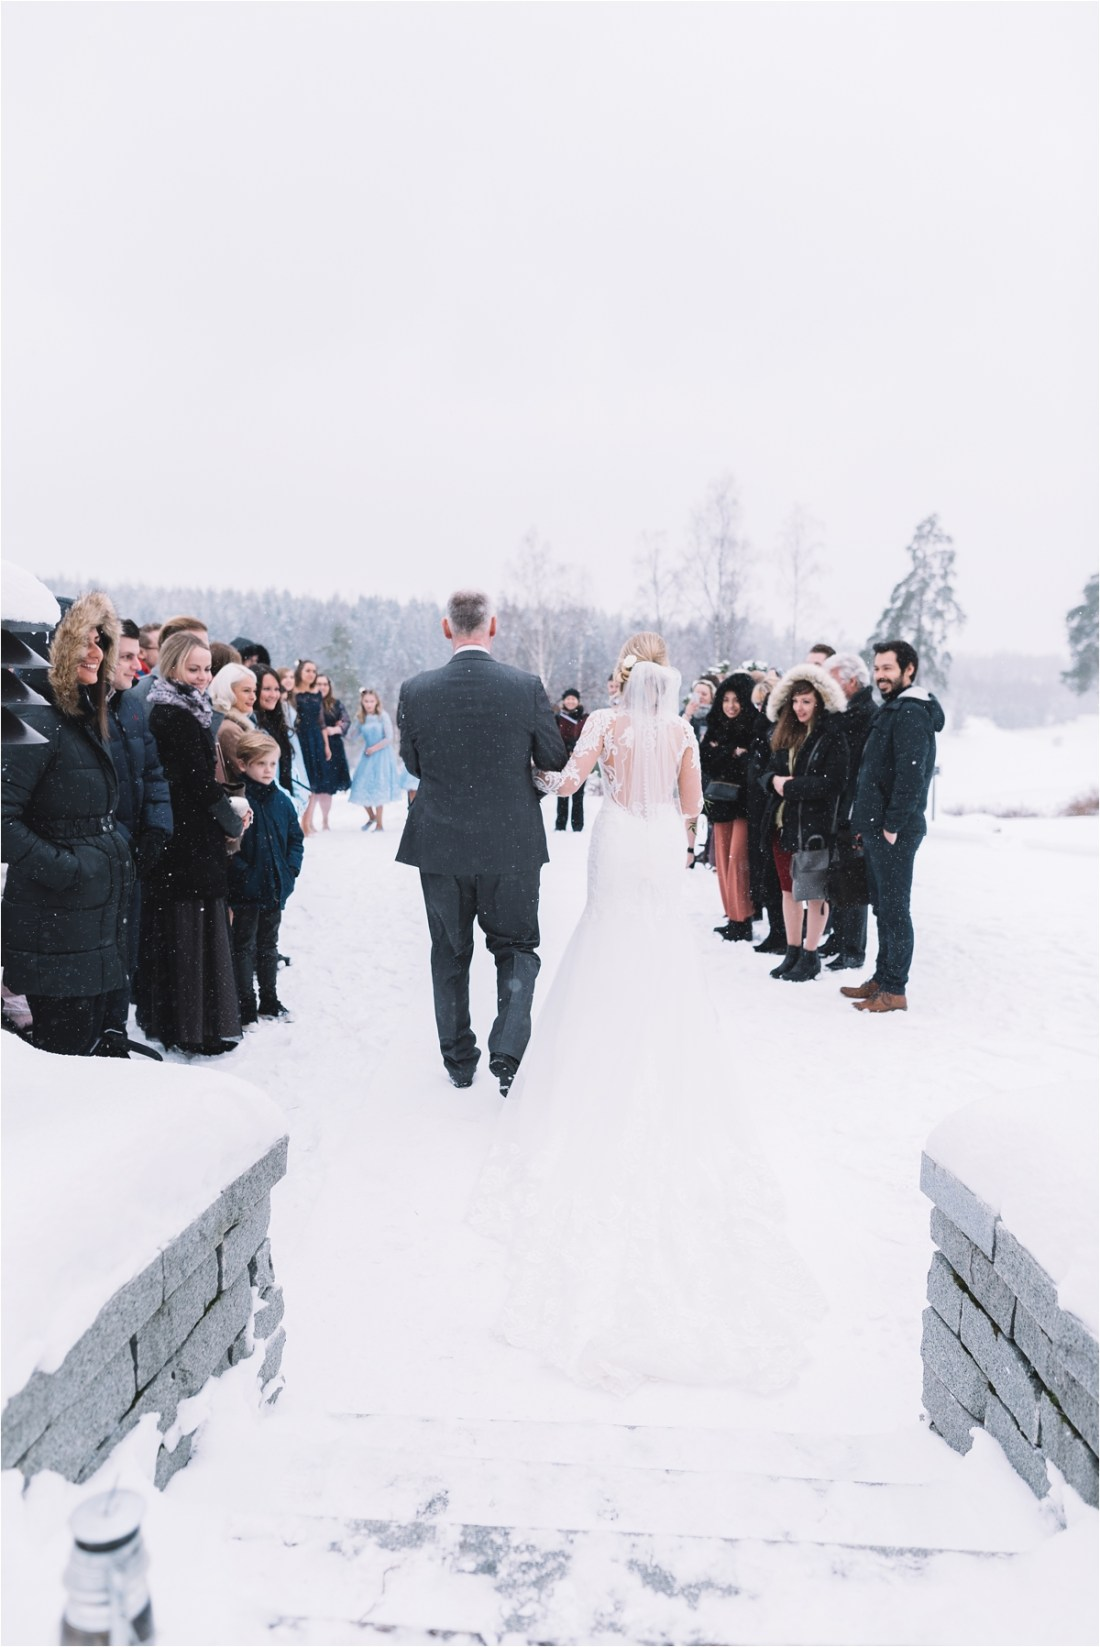 A winter wonderland wedding in Finland with an outdoor ceremony in the snow by Lucie Watson Photography